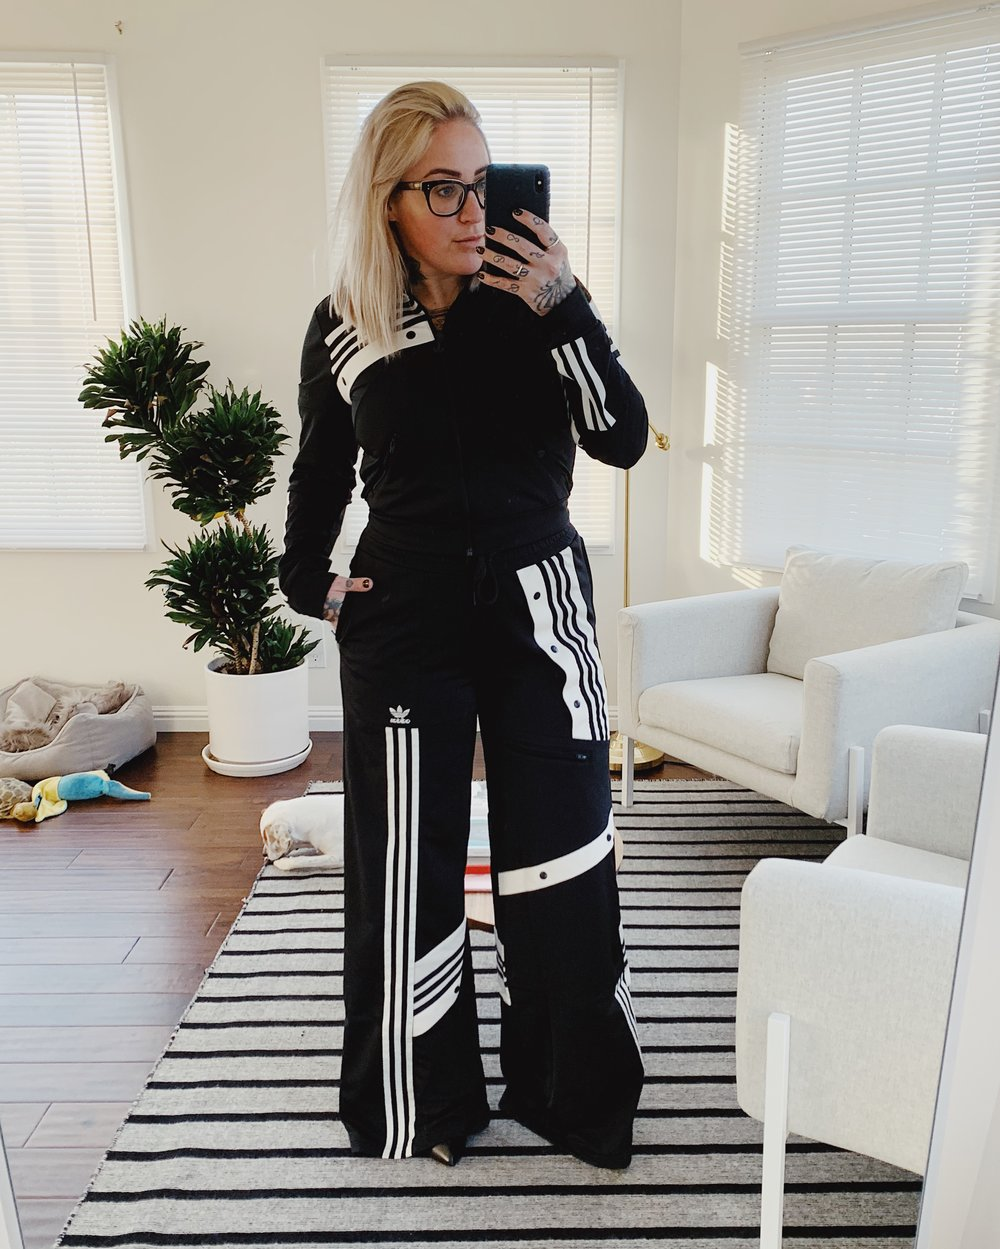 Chic à la sportive - Adidas x Daniella Cathari…HOLY PERFECTION! Can we talk about this chic-ass tracksuit for a minute?! I'm very lucky to have scored this in black as it sold out automatically, but it comes in many other colors that I will link below. So being 5'3, these pants are VERY long and I have to wear my tallest heels with for the perfect fit and it's worth every blister! Everything fits as it should and it's just so versatile. I can't wait to wear the track jacket with high waisted jeans, and pair the track pants with a fitted turtleneck! Keep an eye out for those upcoming looks on my Instagram.Click here to shop track jacket.Click here to shop track pants.